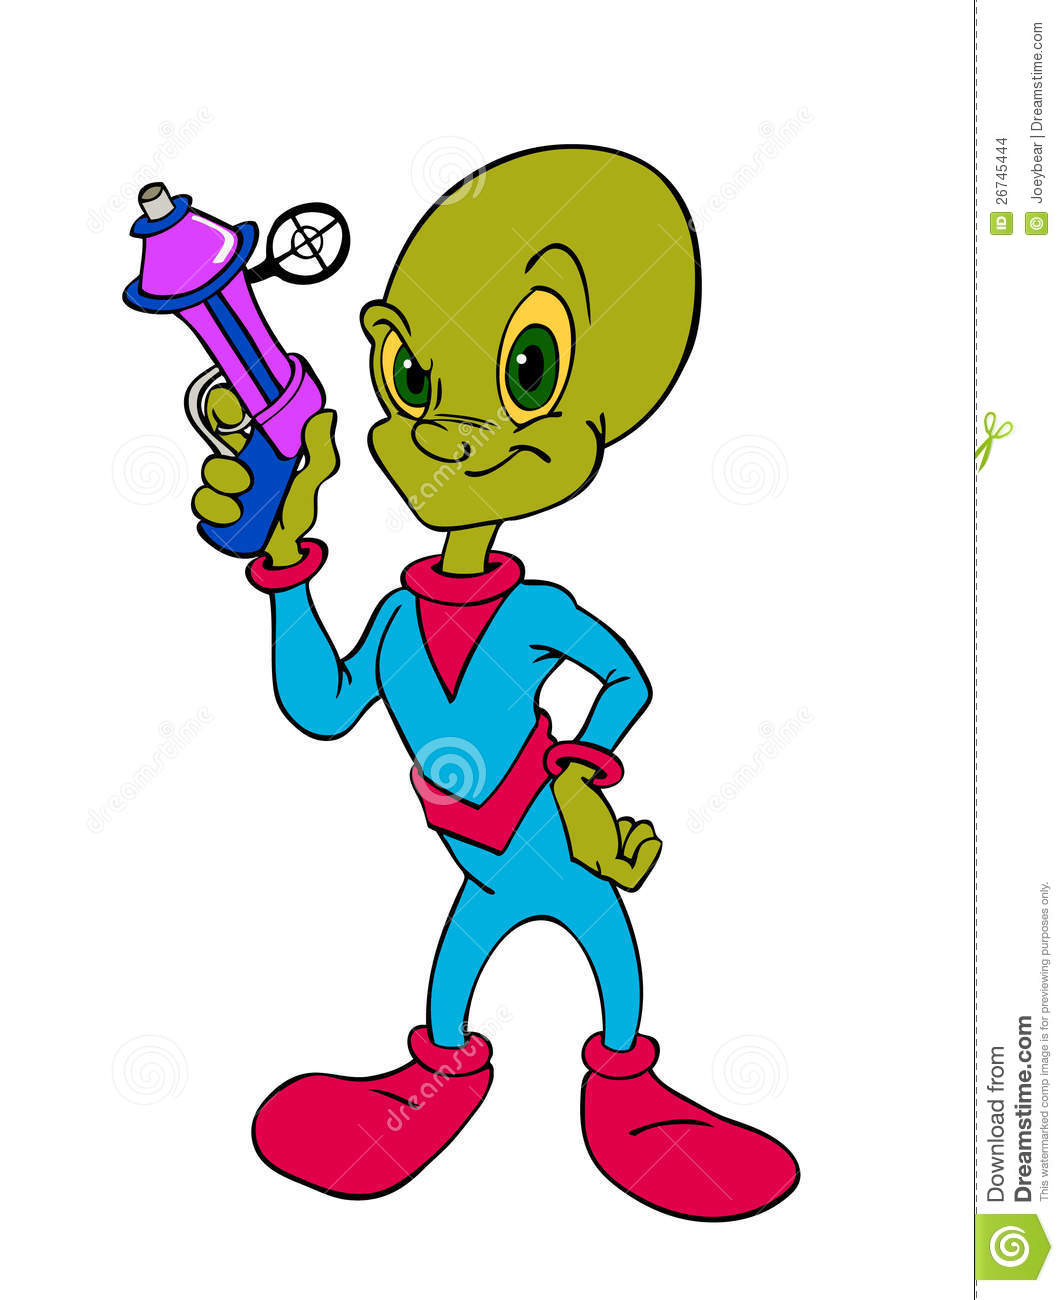 93437 further 27210 further Stock Photography Young Girl Blowing Kiss Image13032992 together with Stock Images Alien Ray Gun Cartoon Image26745444 further Page 171. on objects in space scary